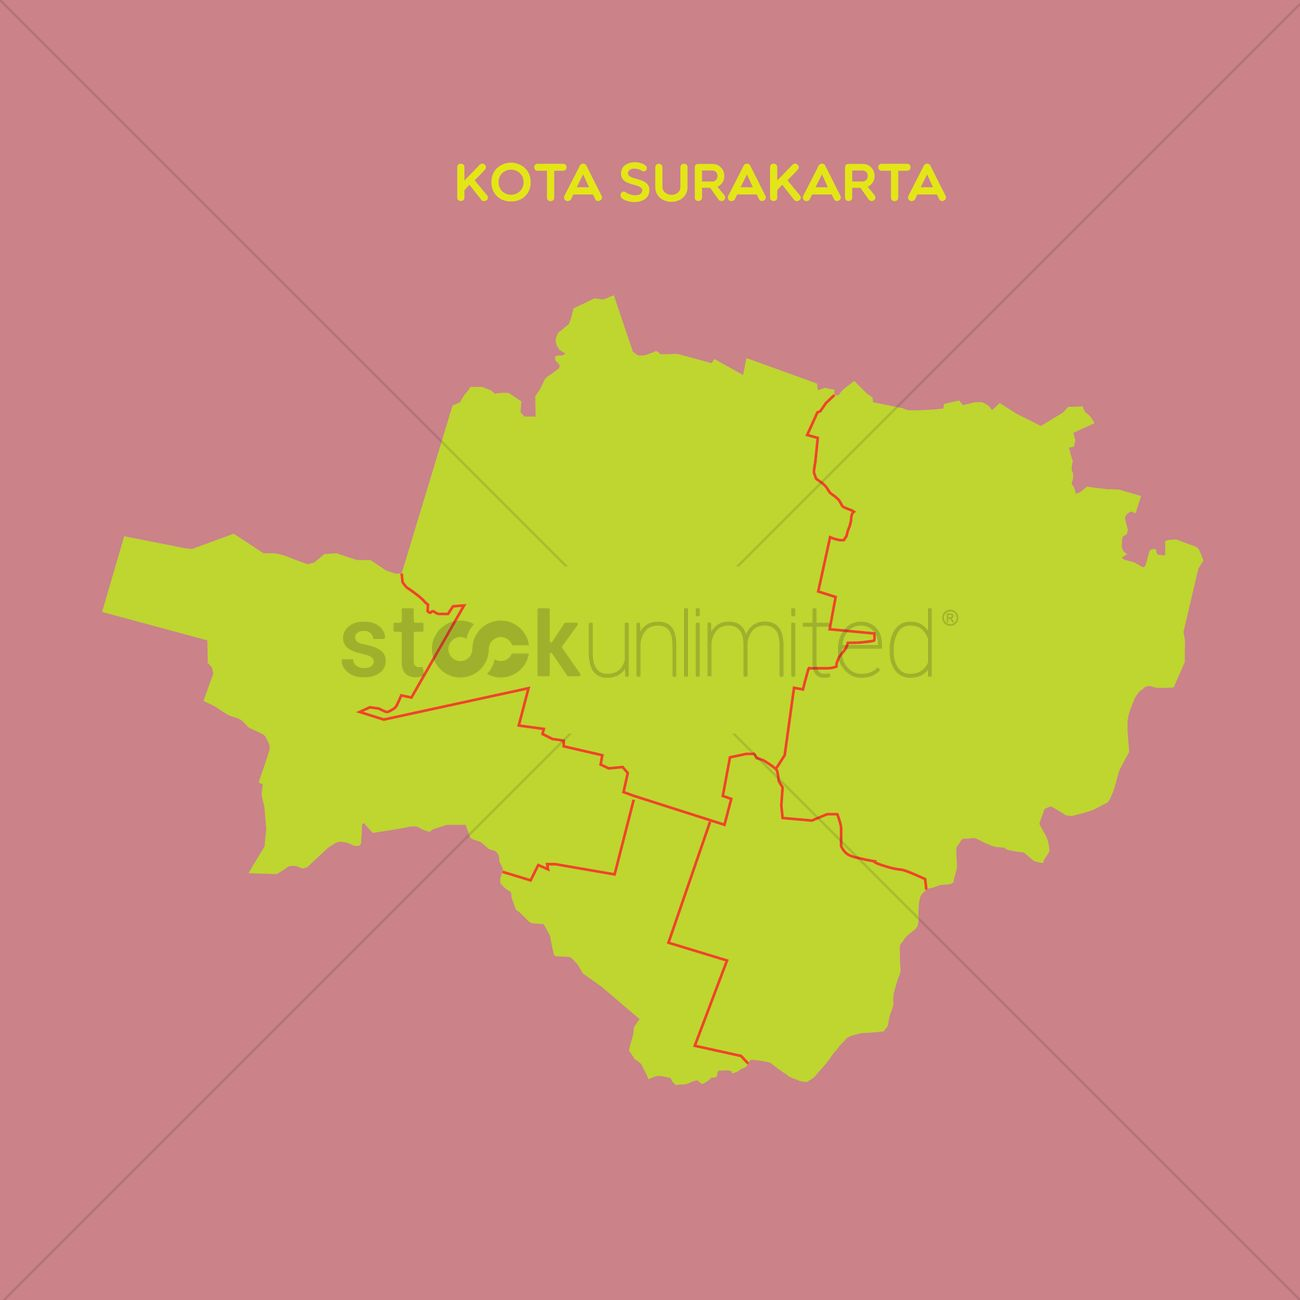 Map of kota surakarta Vector Image 1479795 StockUnlimited